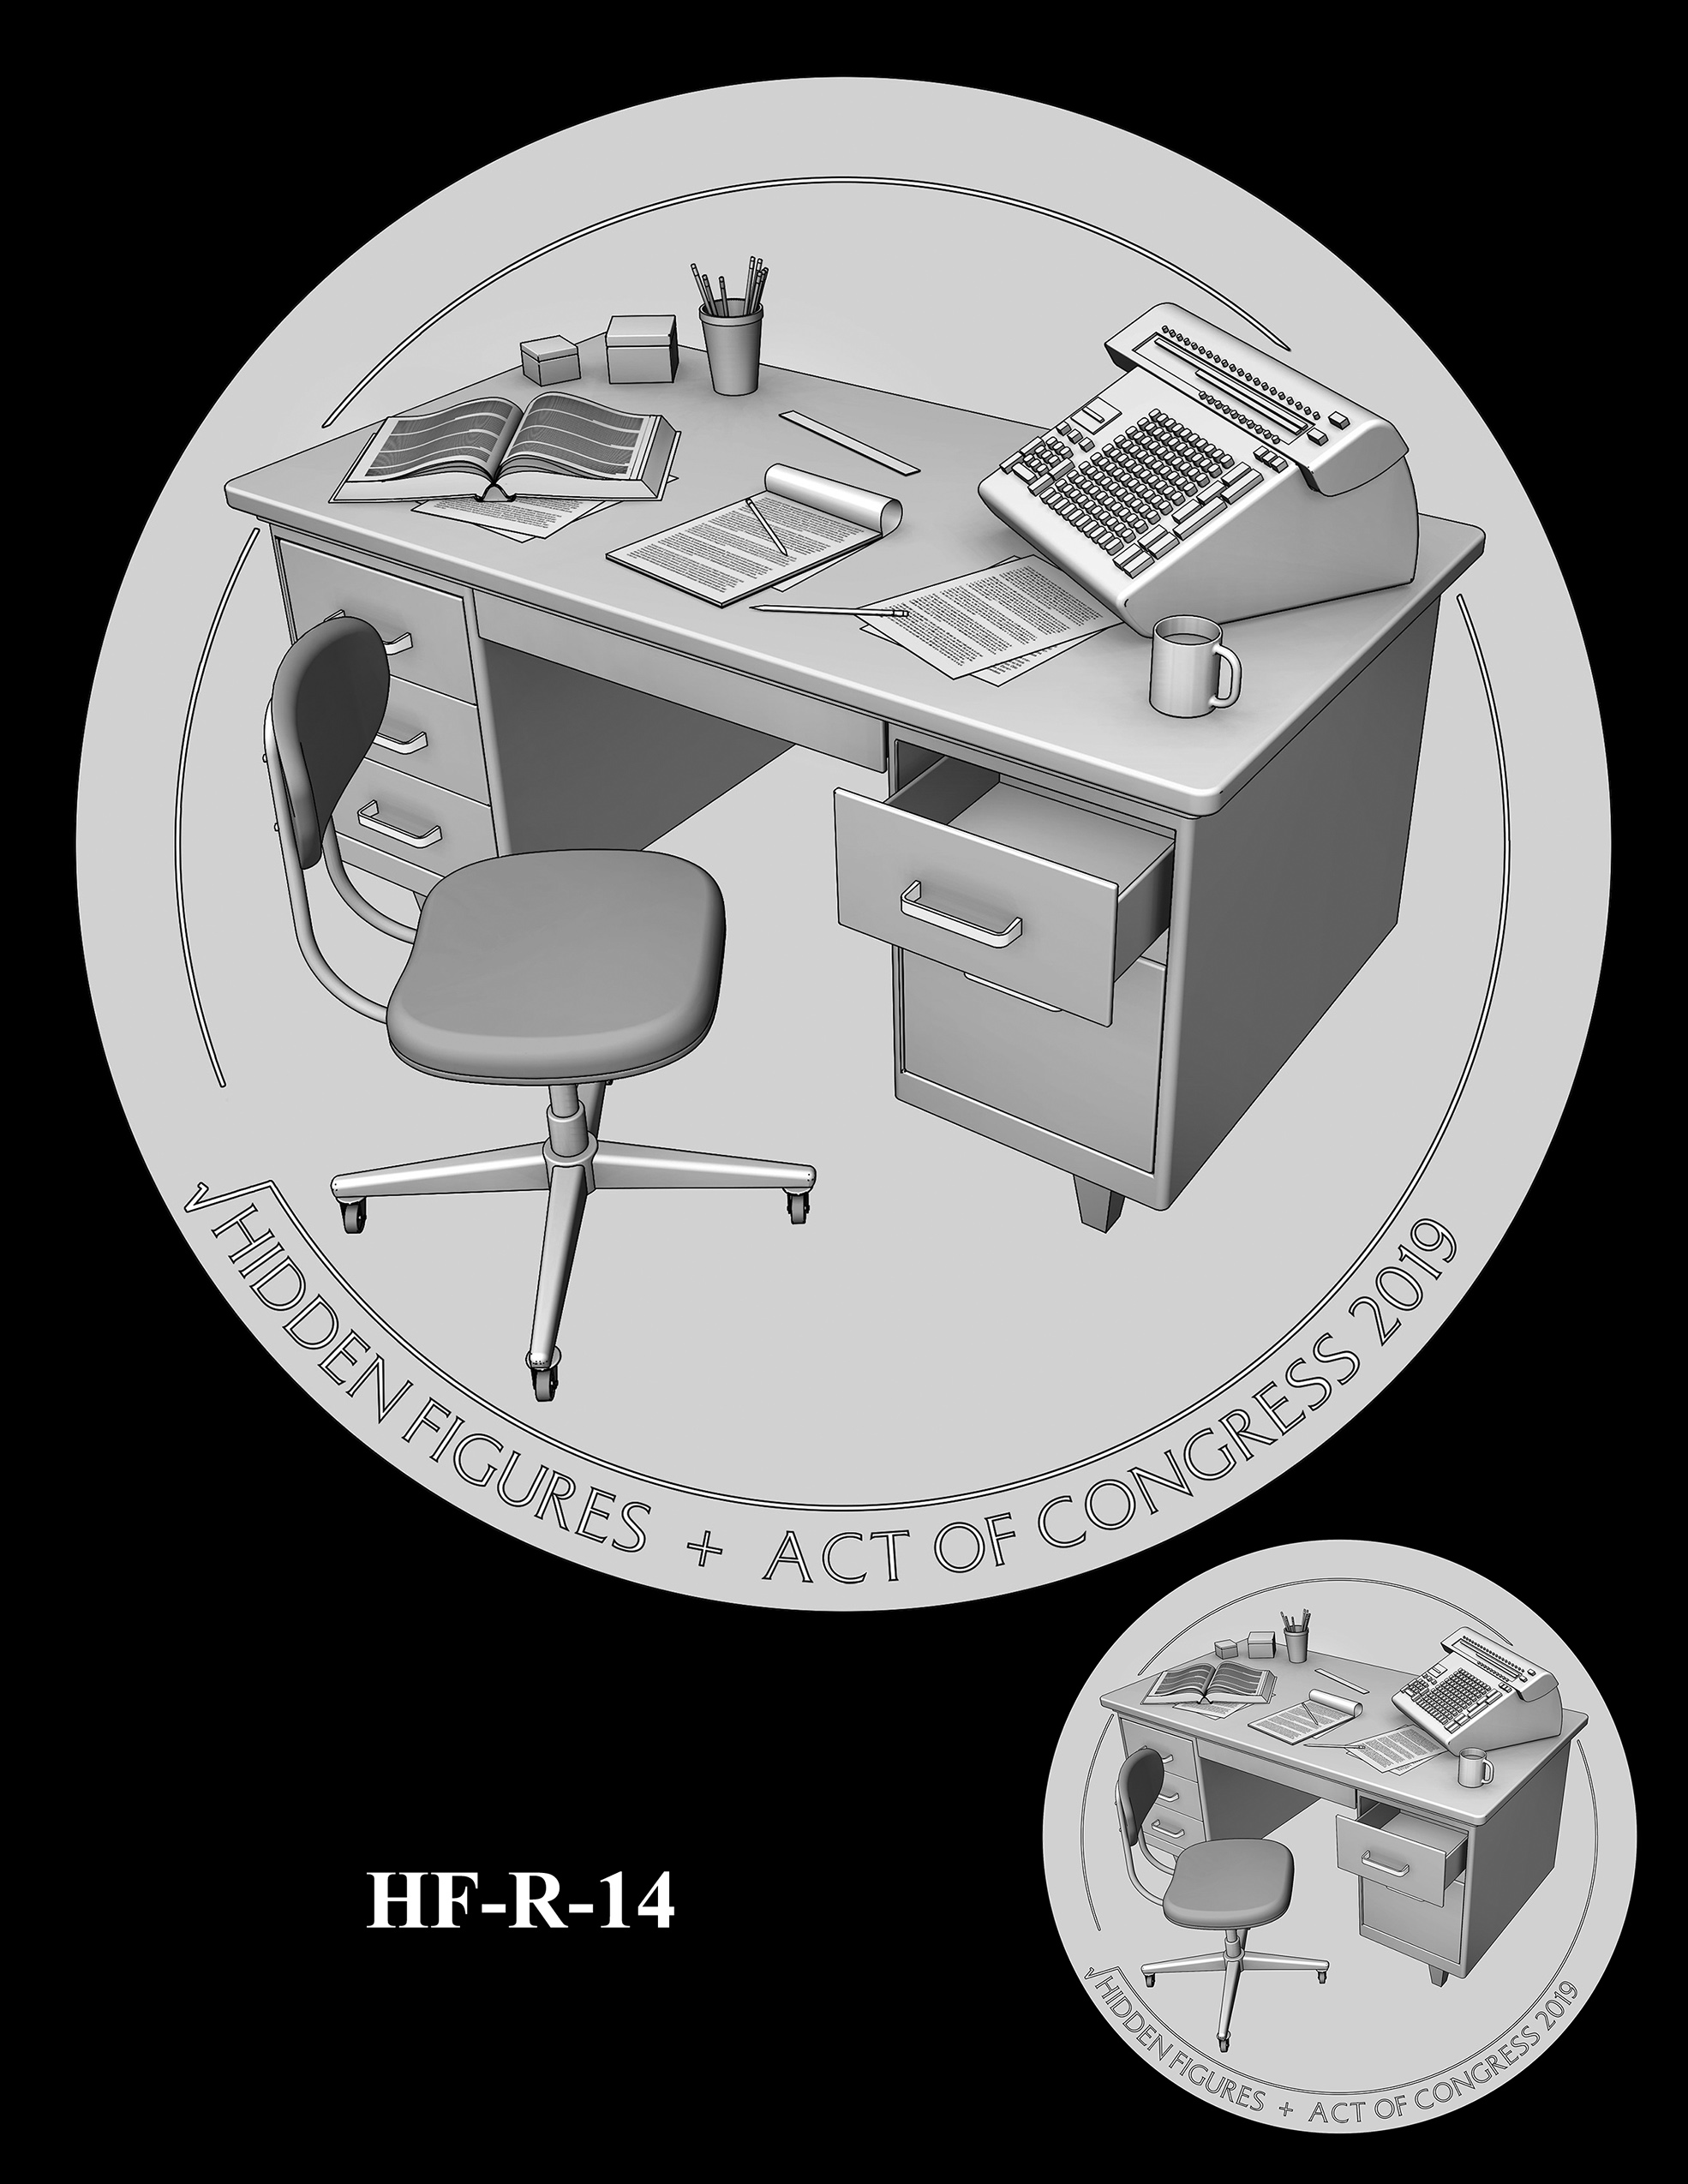 HF-R-14 -- Hidden Figures Group Congressional Gold Medal